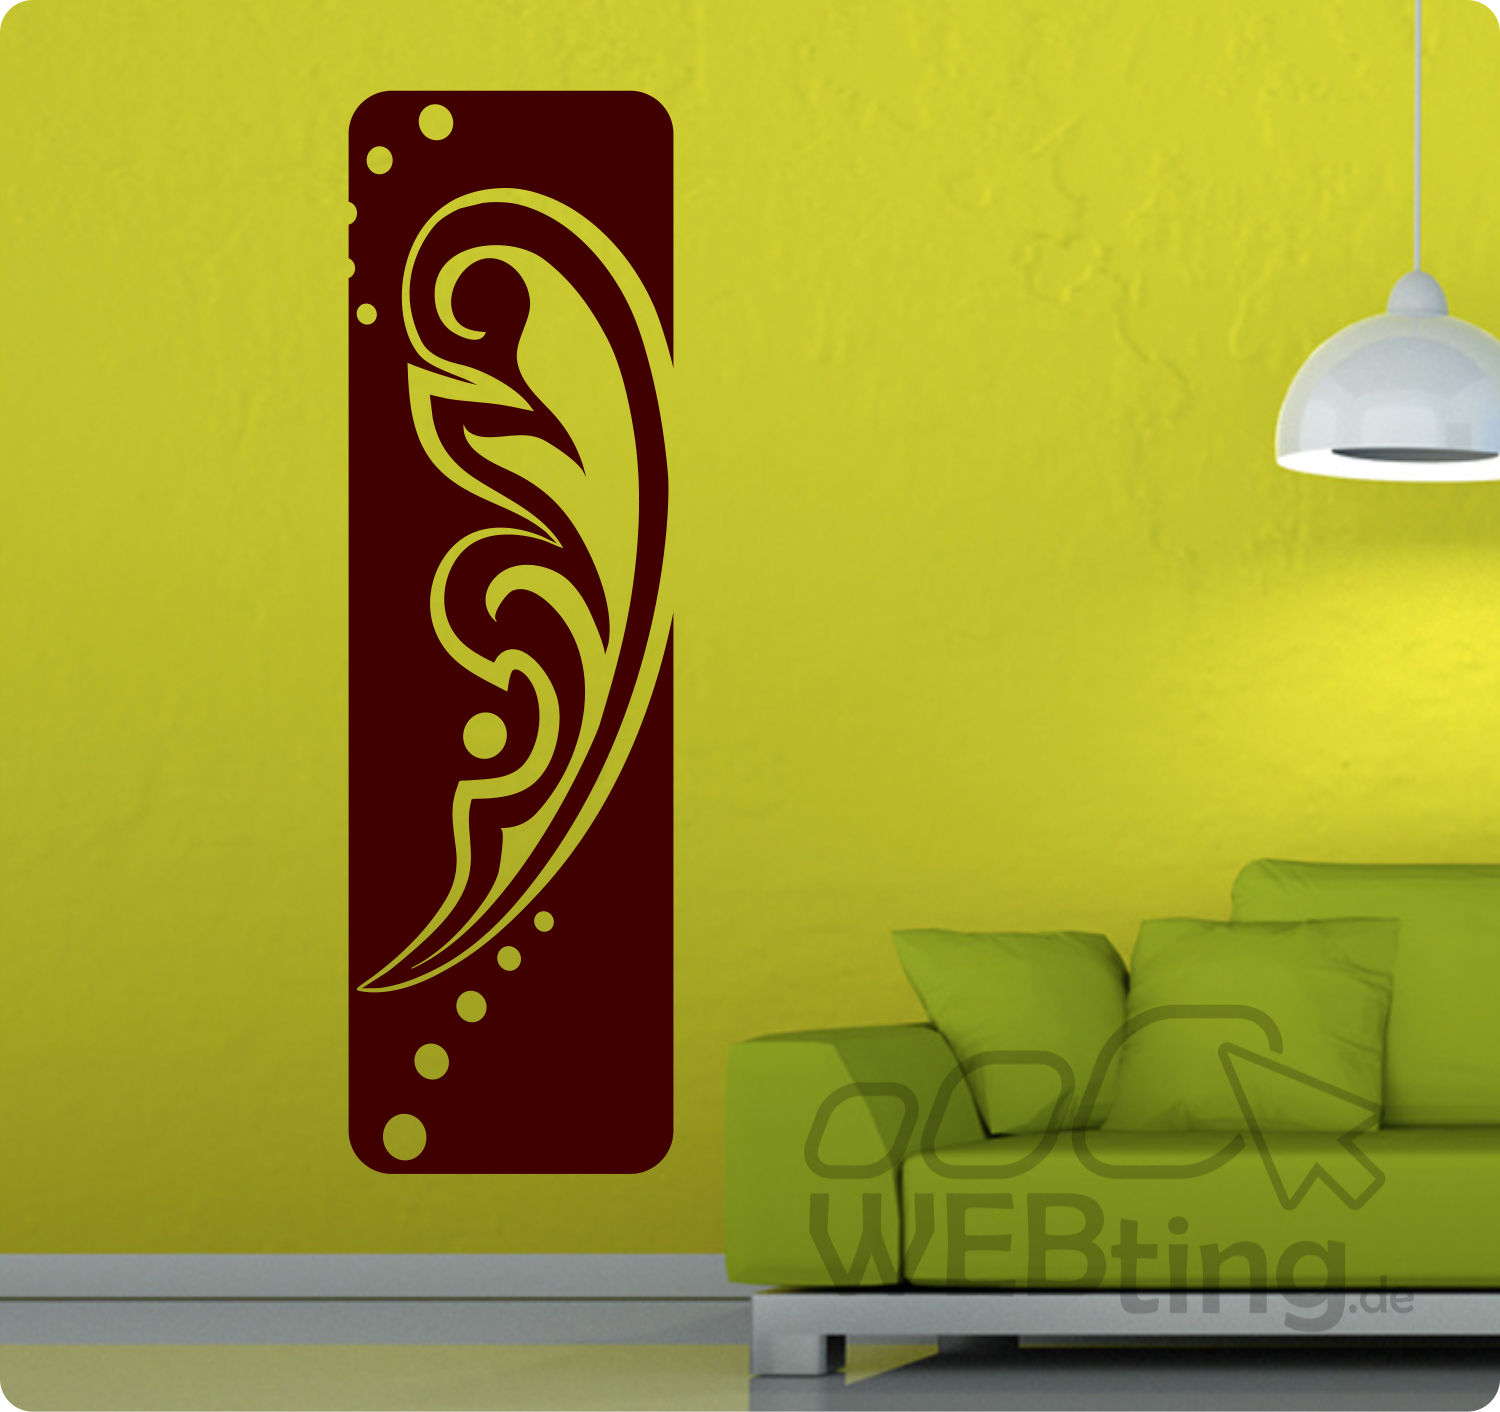 wandtattoo banner blumen ranke wandaufkleber aufkleber streifen deko tattoo flur. Black Bedroom Furniture Sets. Home Design Ideas